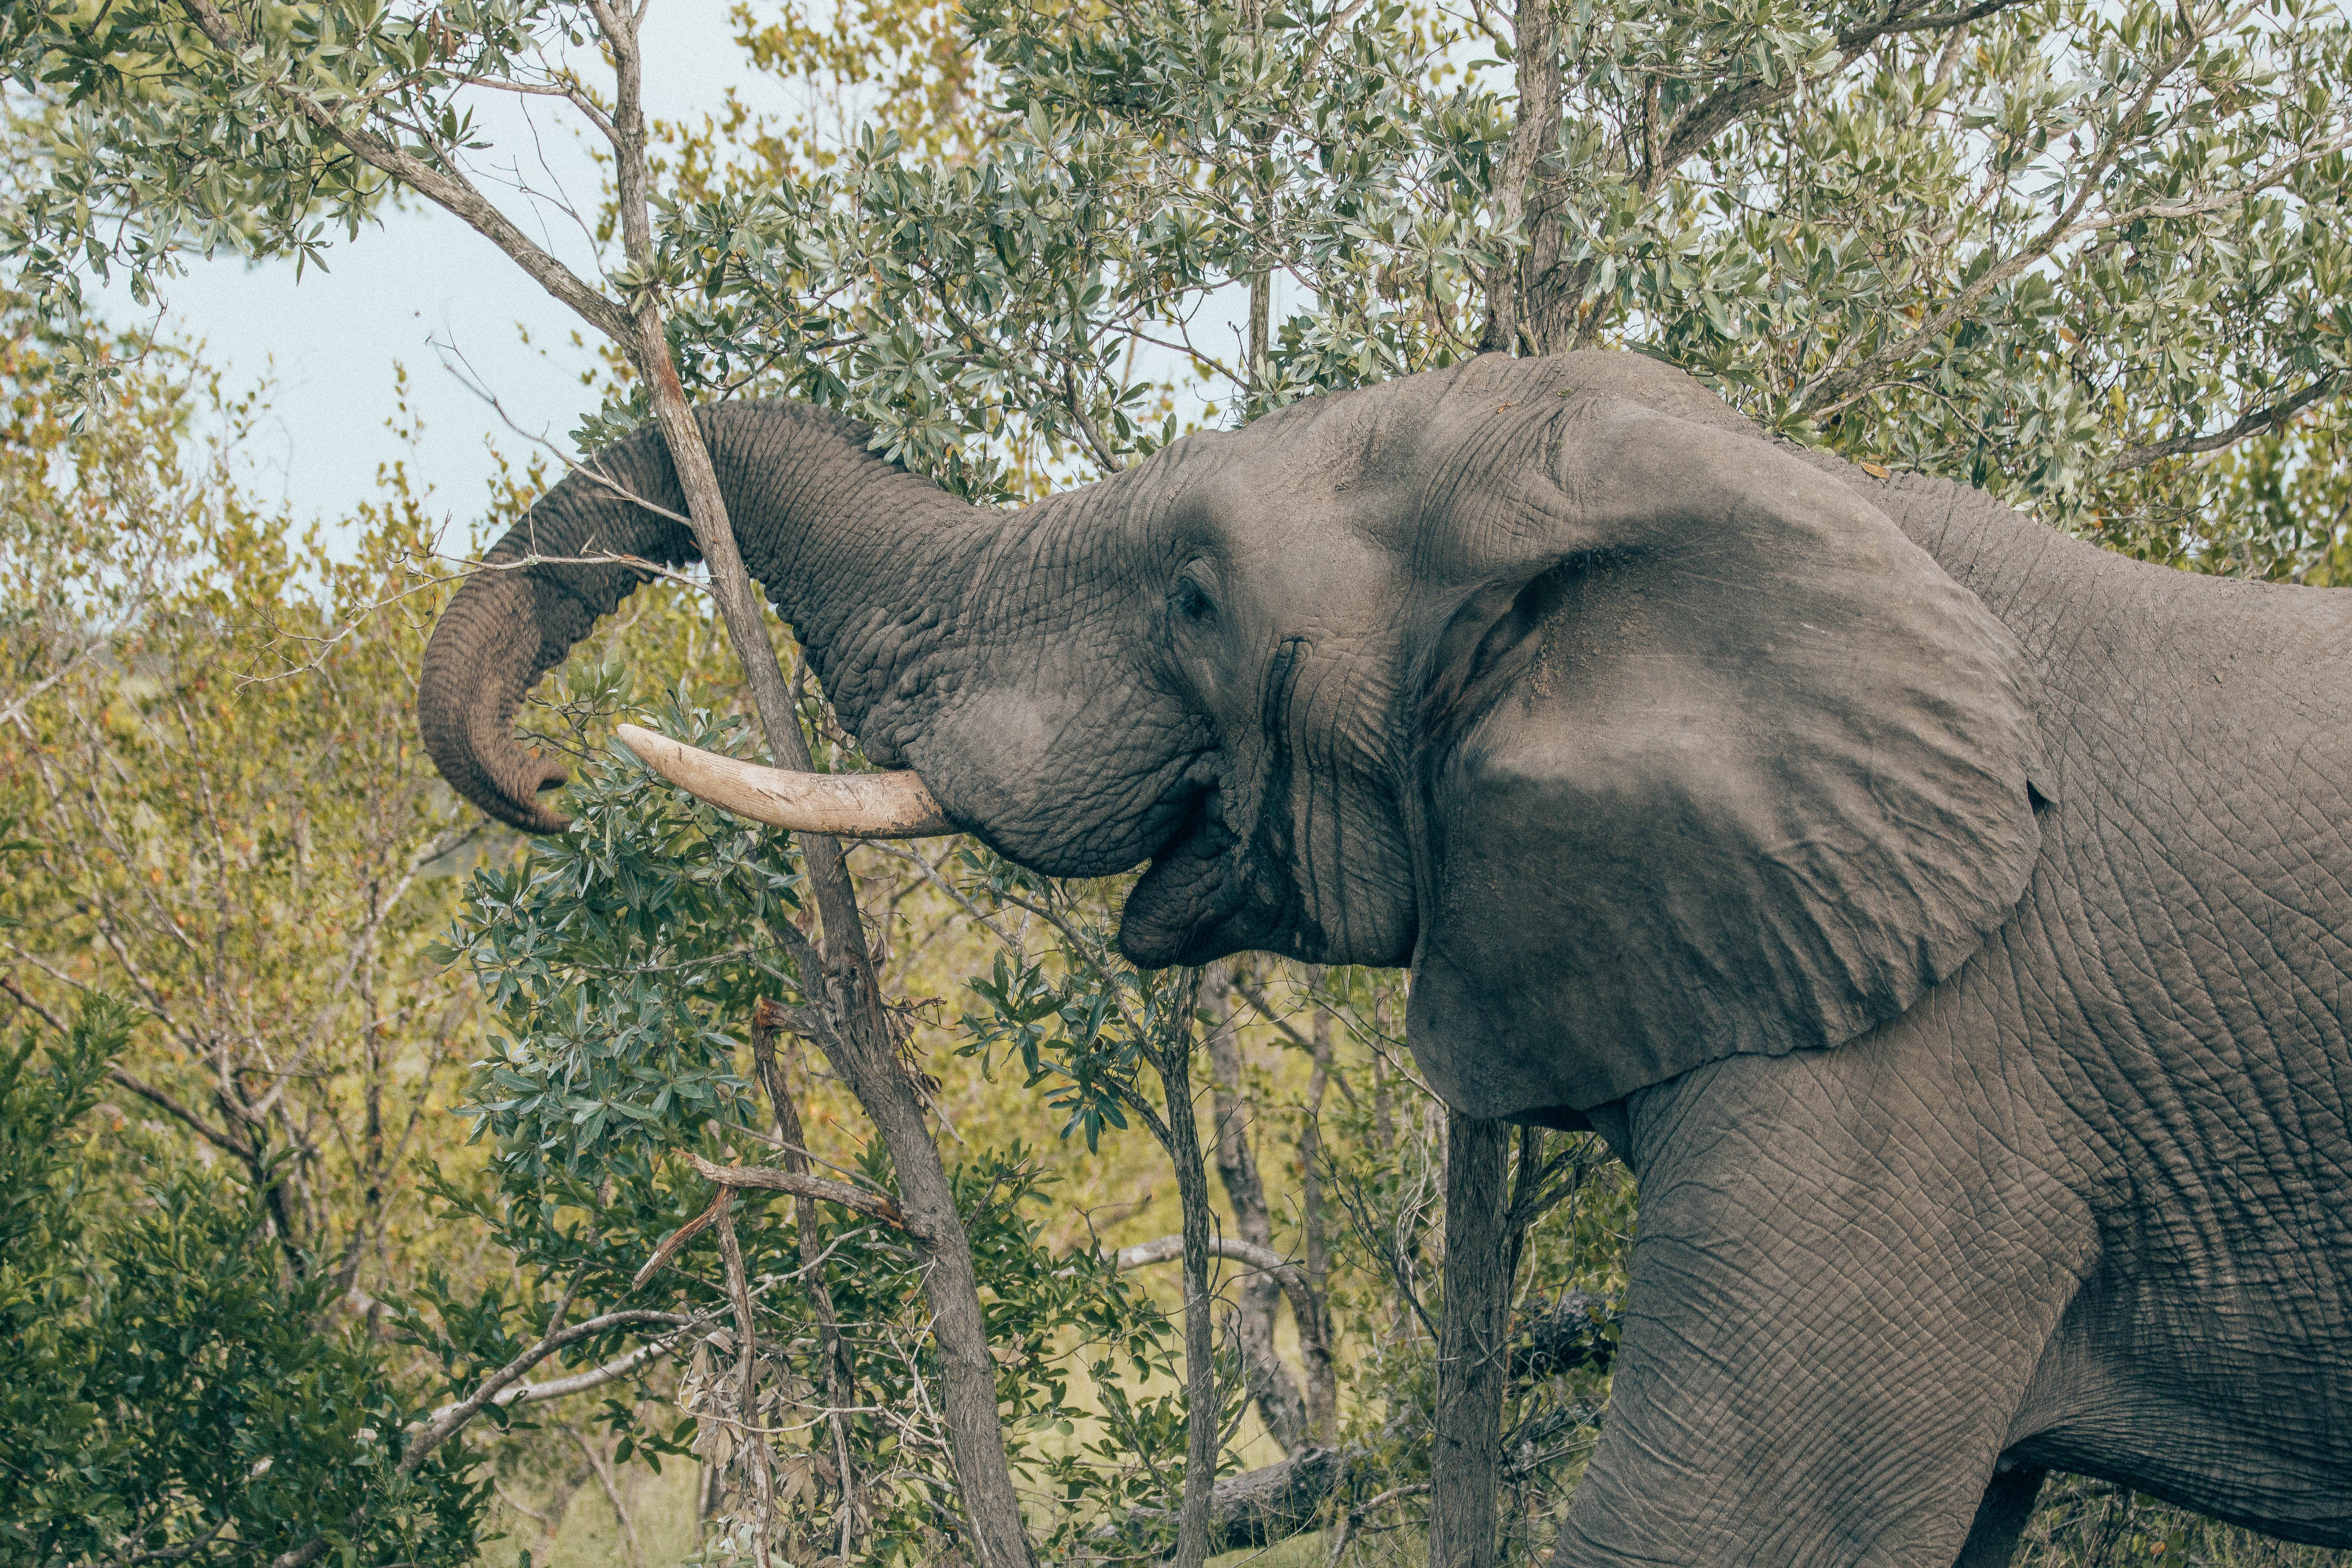 Elephant grabbing tree with trunk.